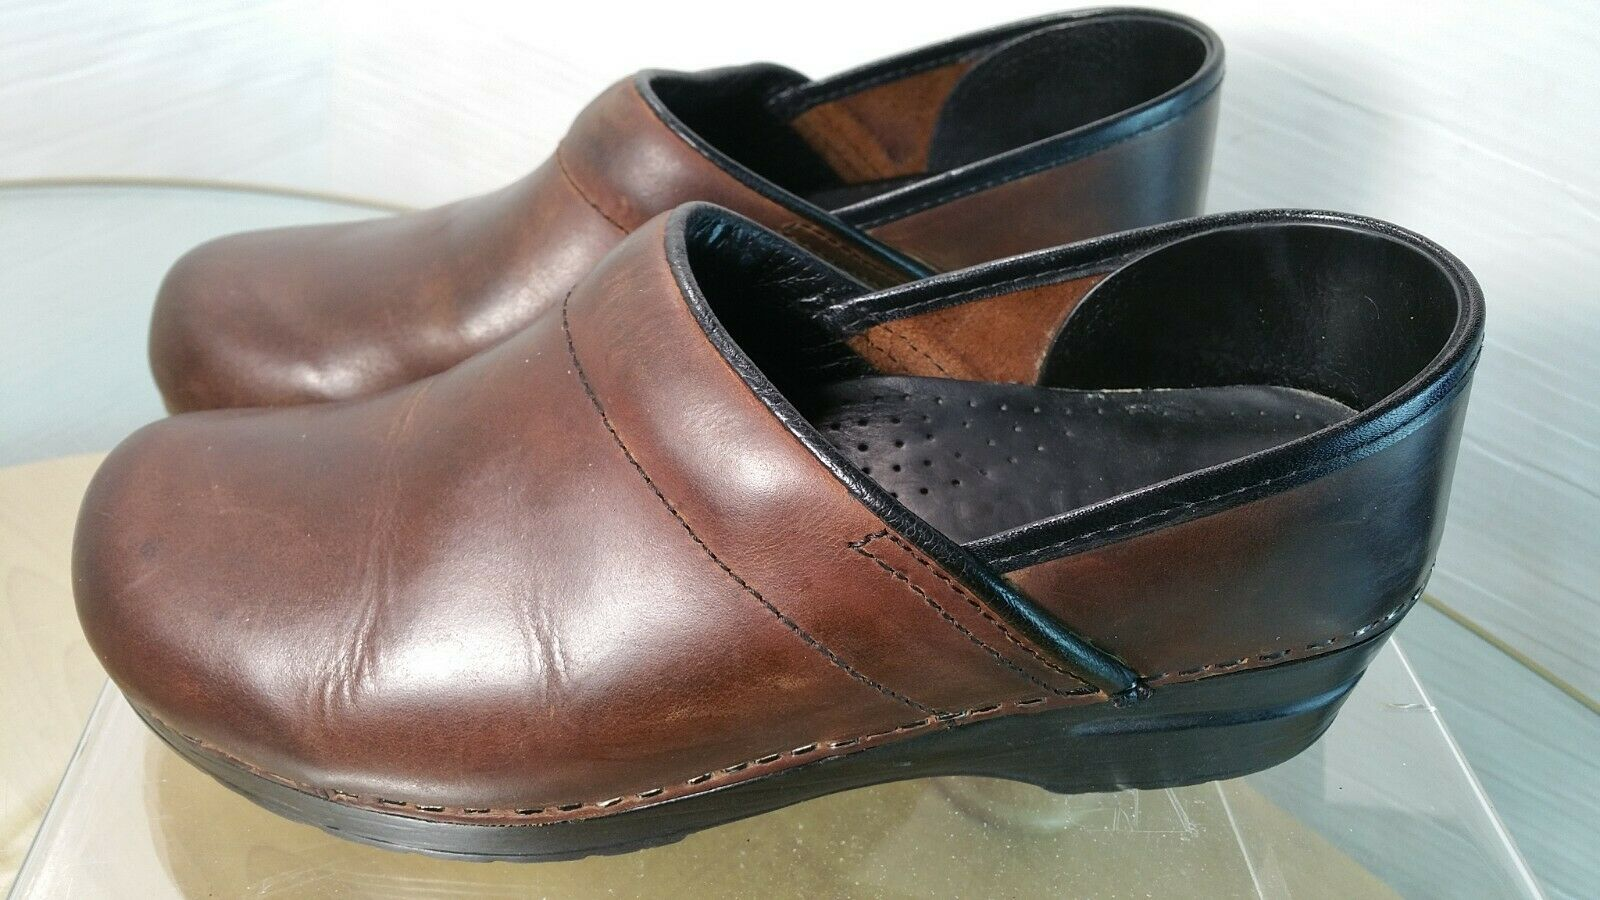 Sanita Women's Professional  Brown Leather Occupational Clogs Size 39 US 8.5 -9